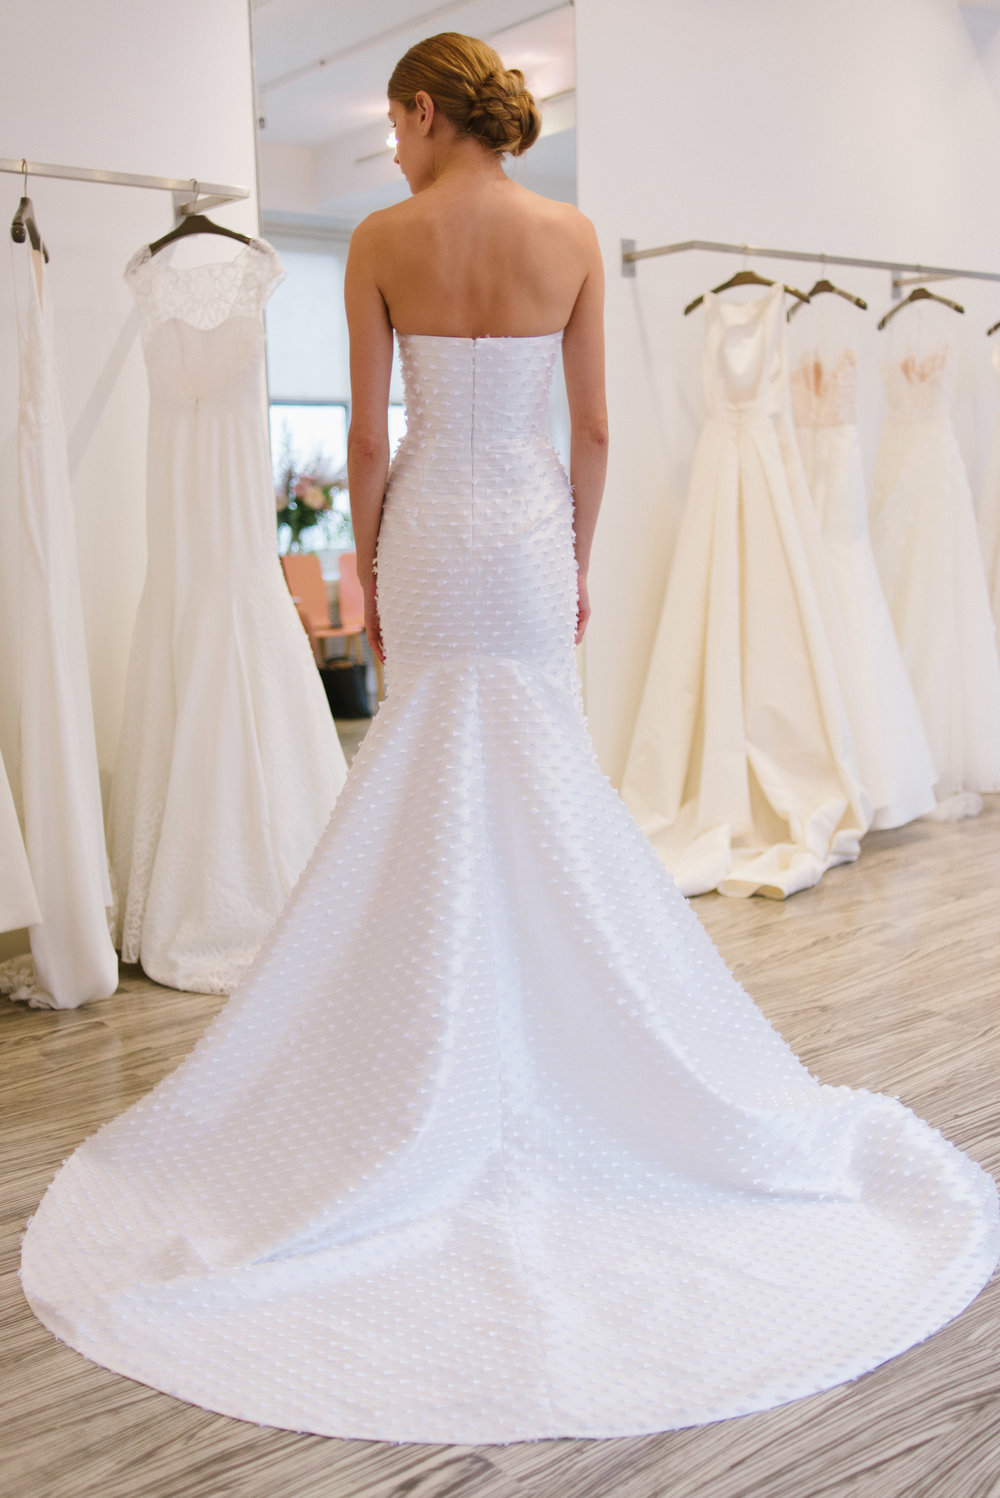 New York Bridal Fashion Week 2016 | Lela Rose | Little White Dress Bridal Shop in Denver